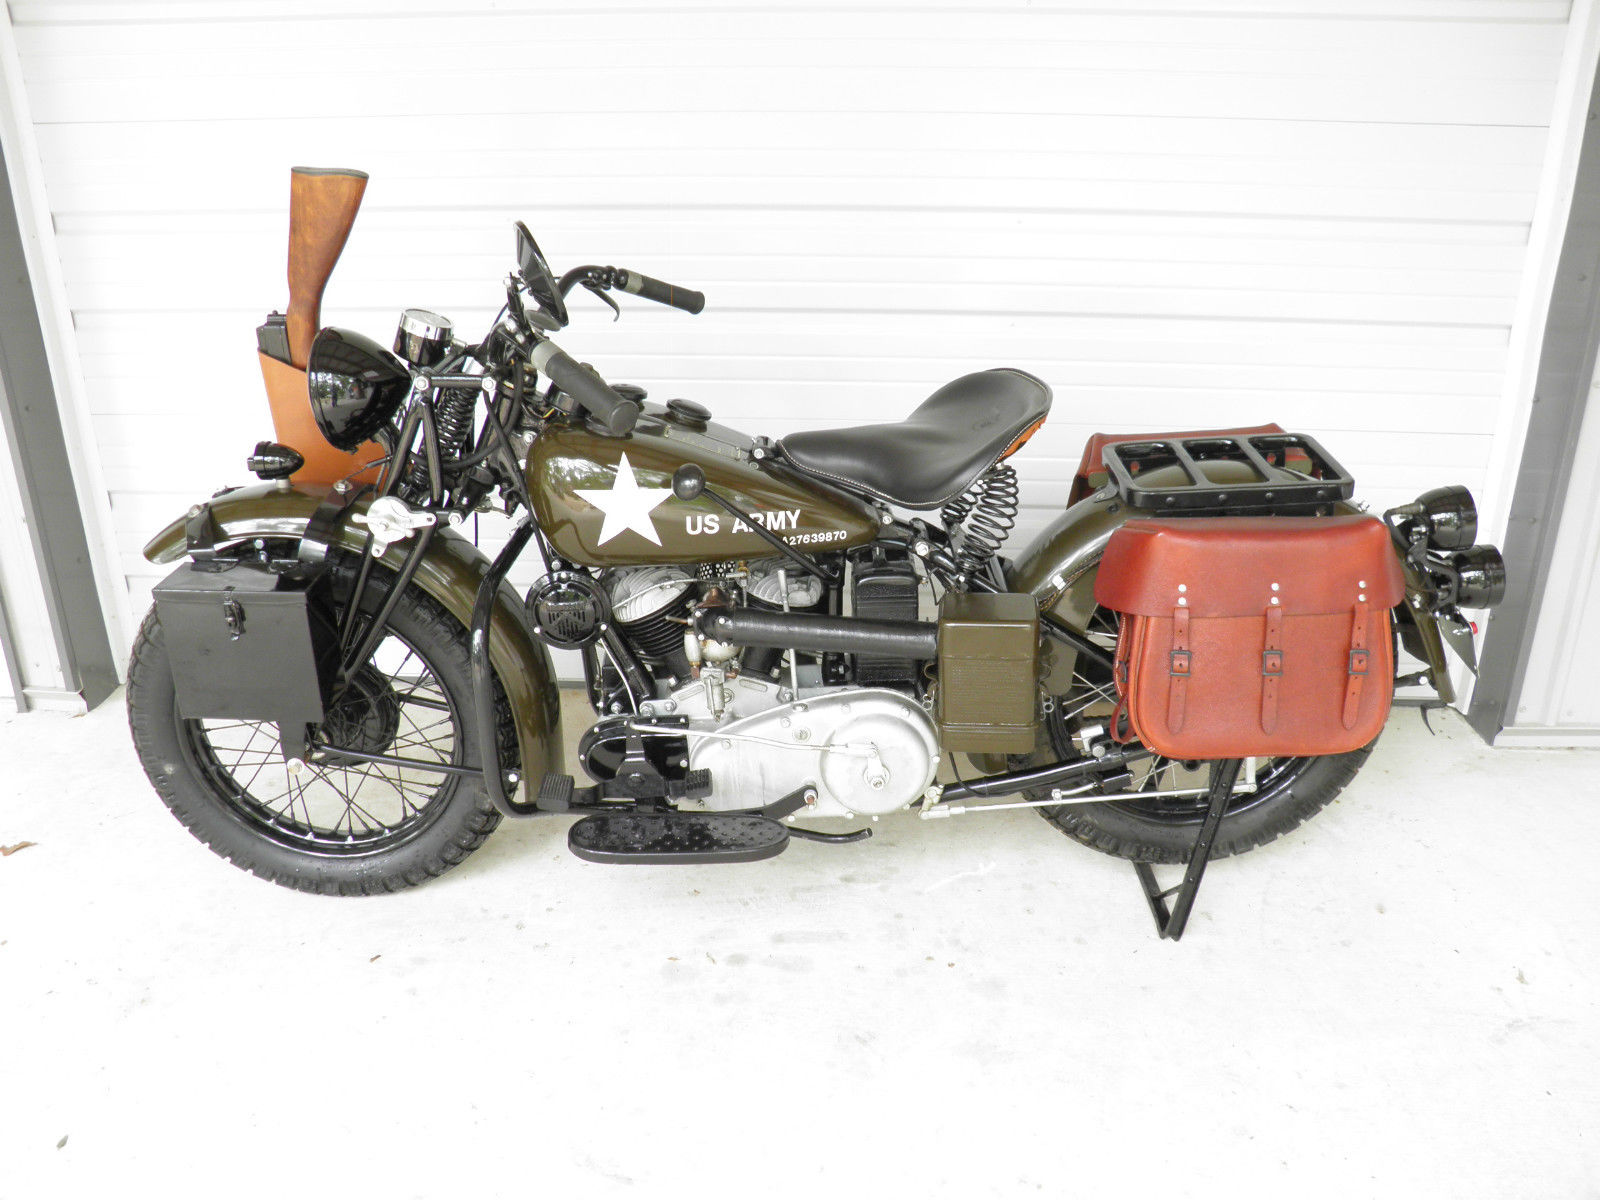 This is the Indian Motocycle 741 for sale on eBay. Note the different placement of the gear lever, the tool box on the left fork, and the carrier located over the center of the rear axle. (Picture courtesy eBay).